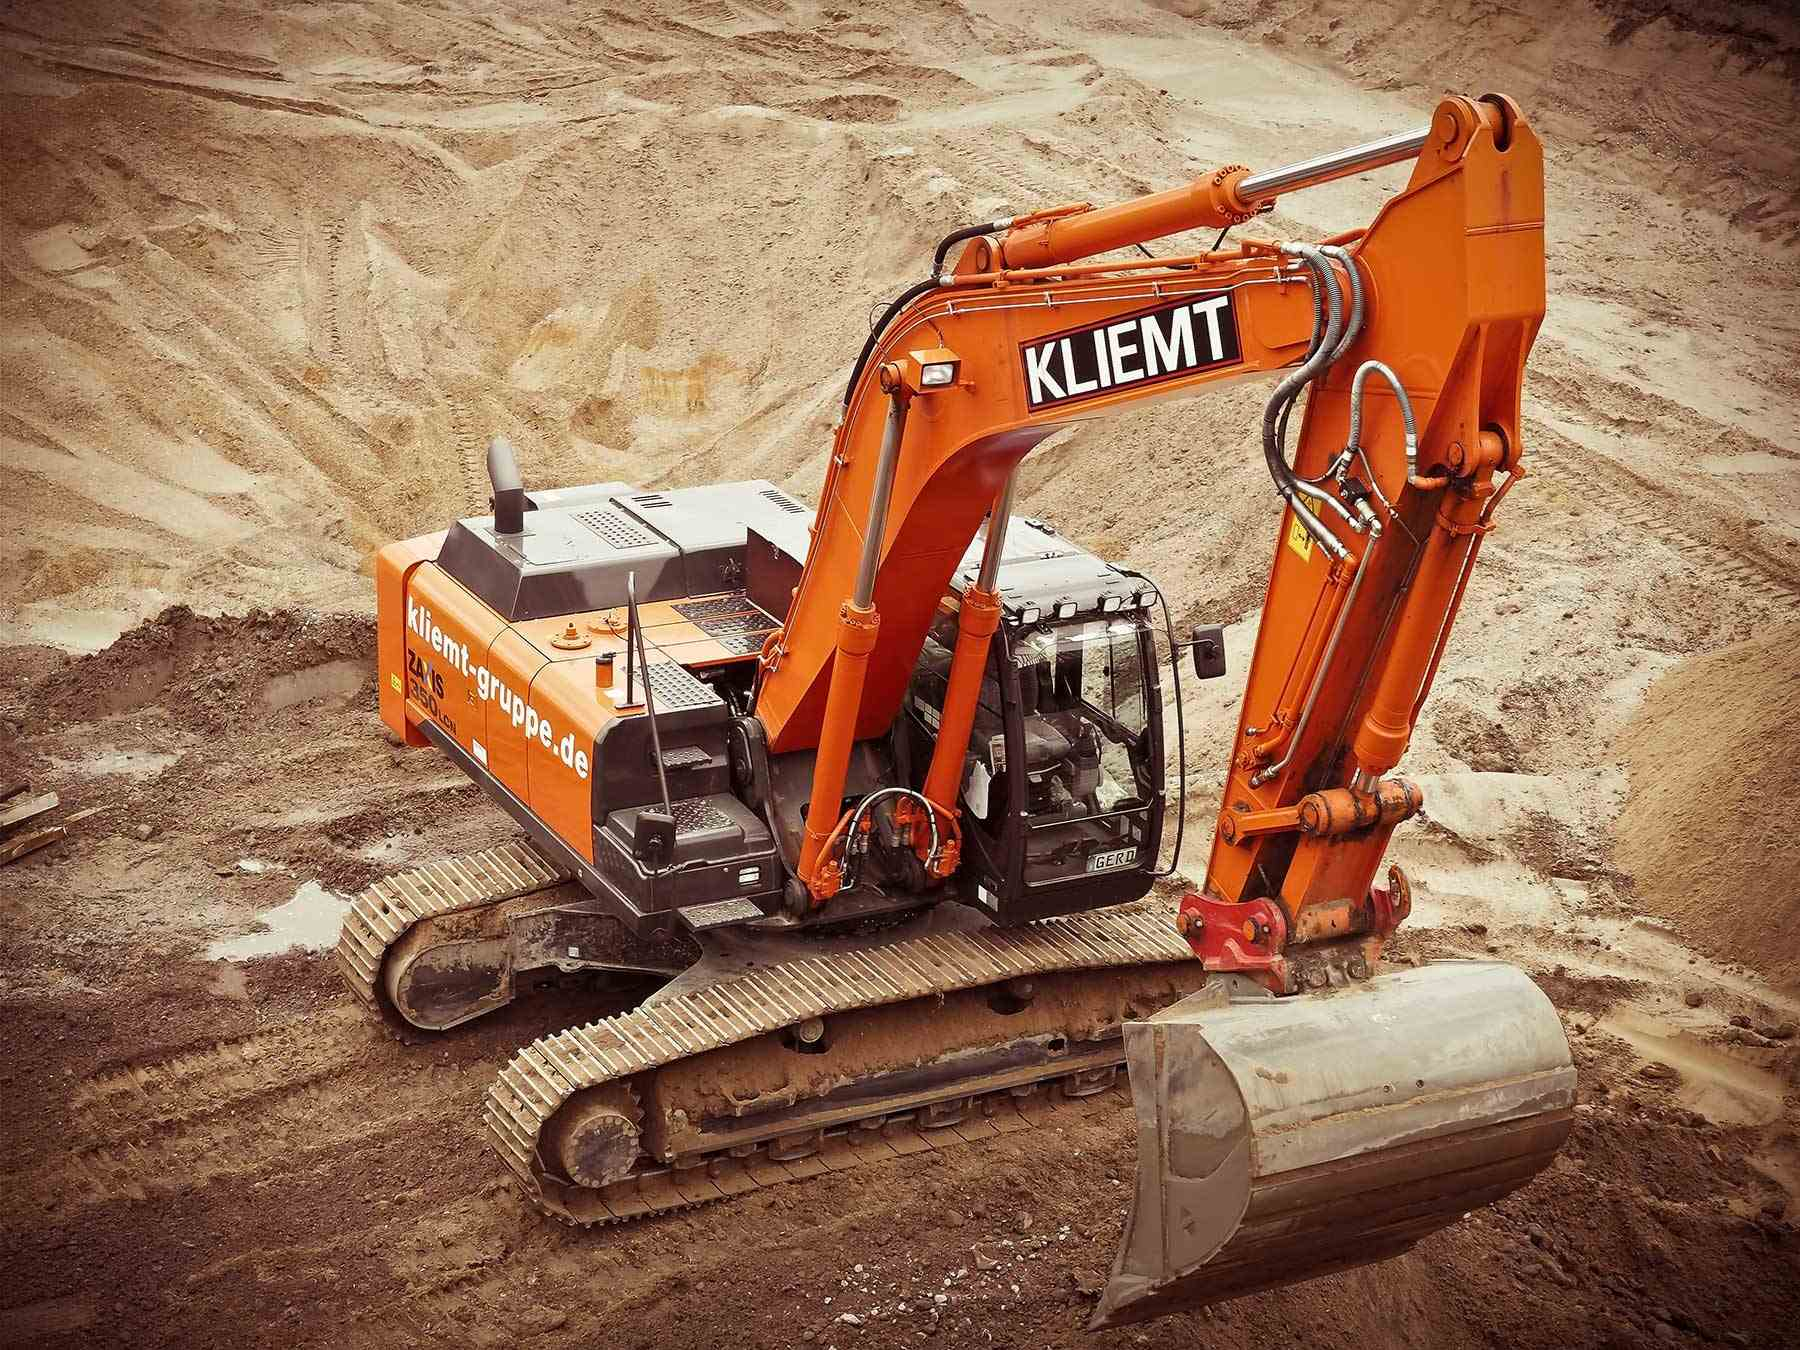 Kliemt digger on gravel